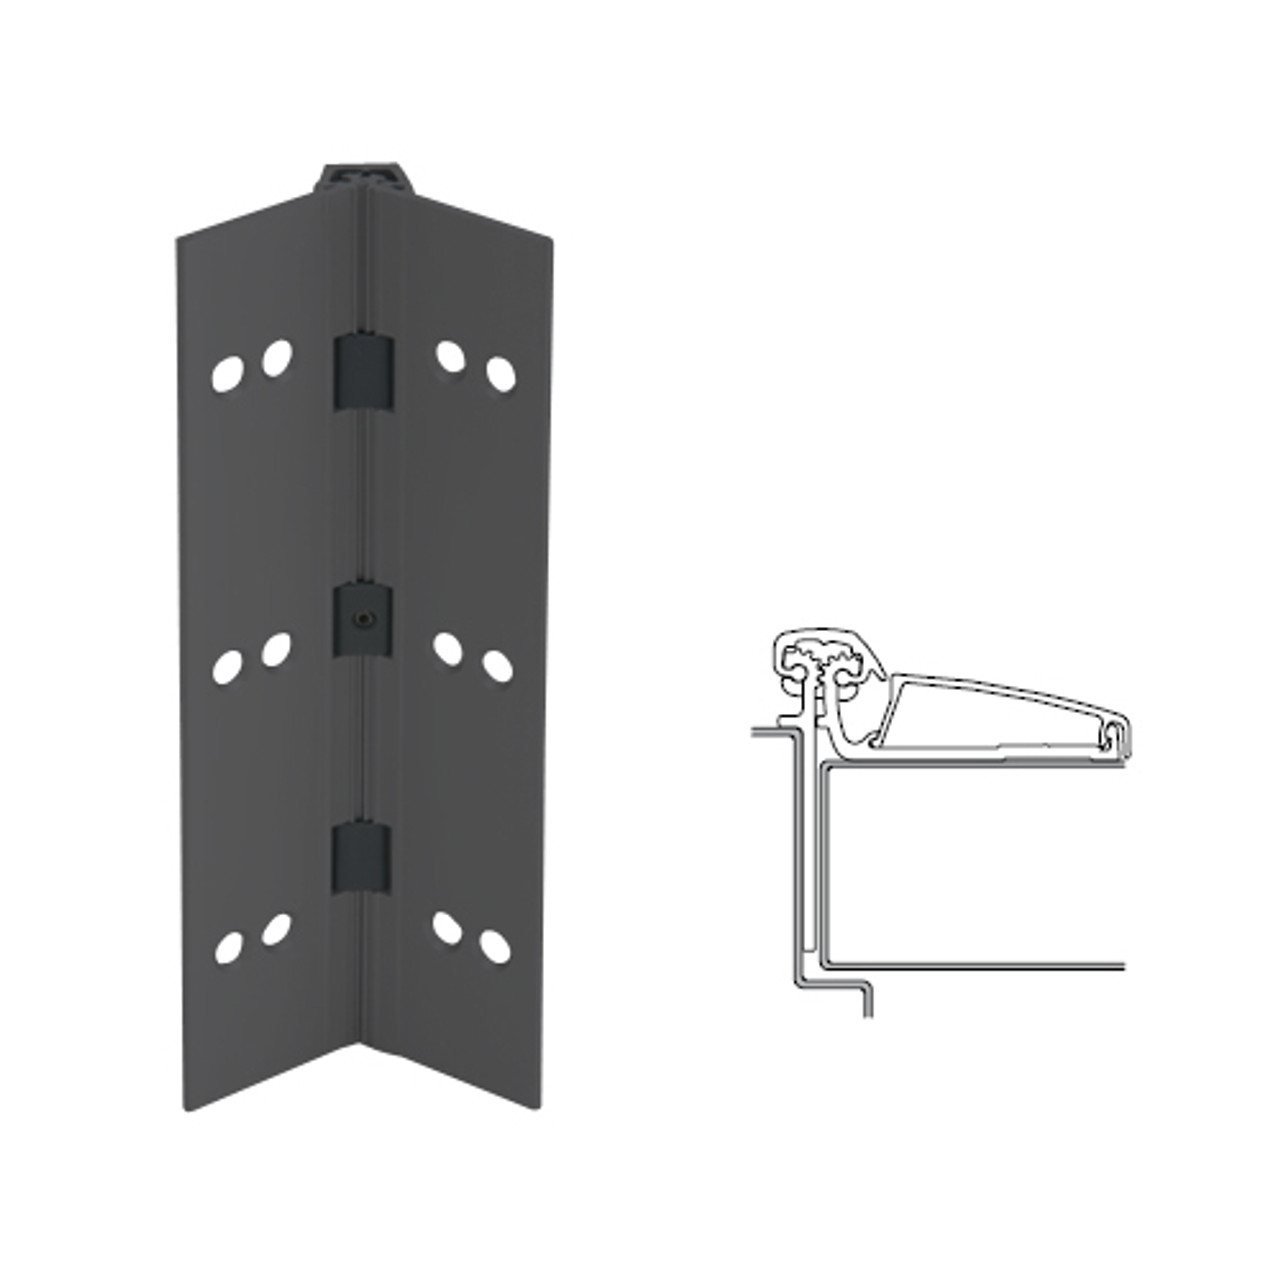 046XY-315AN-120-SECWDWD IVES Adjustable Half Surface Continuous Geared Hinges with Security Screws - Hex Pin Drive in Anodized Black